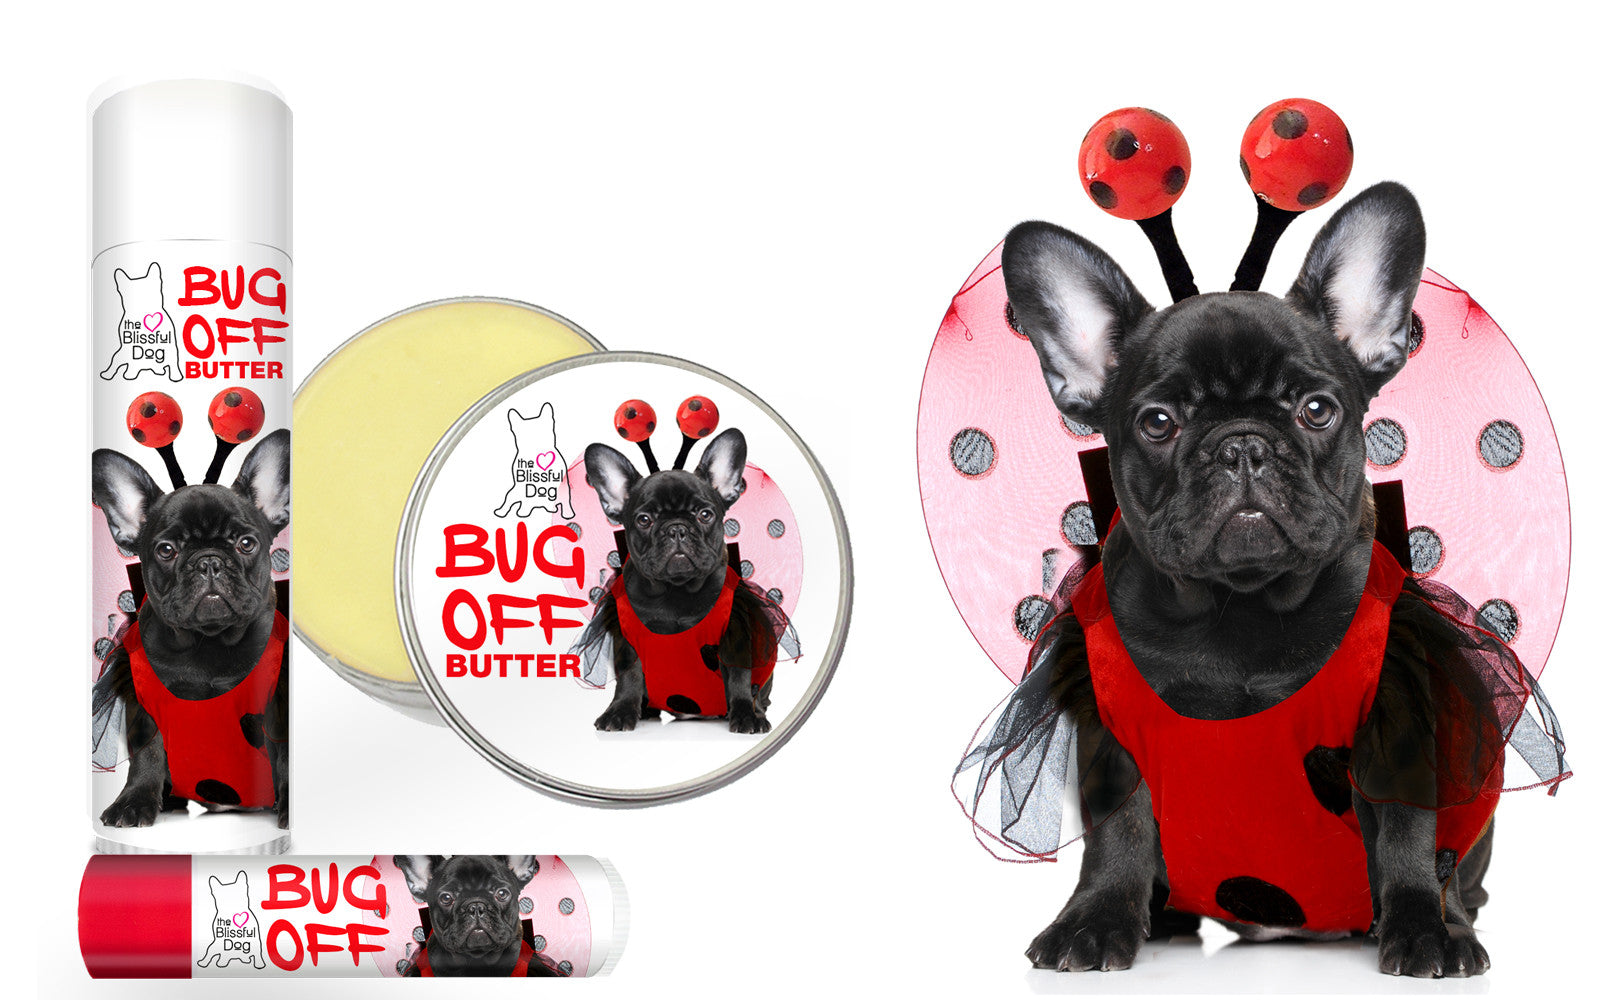 FRENCH BULLDOG INSECT